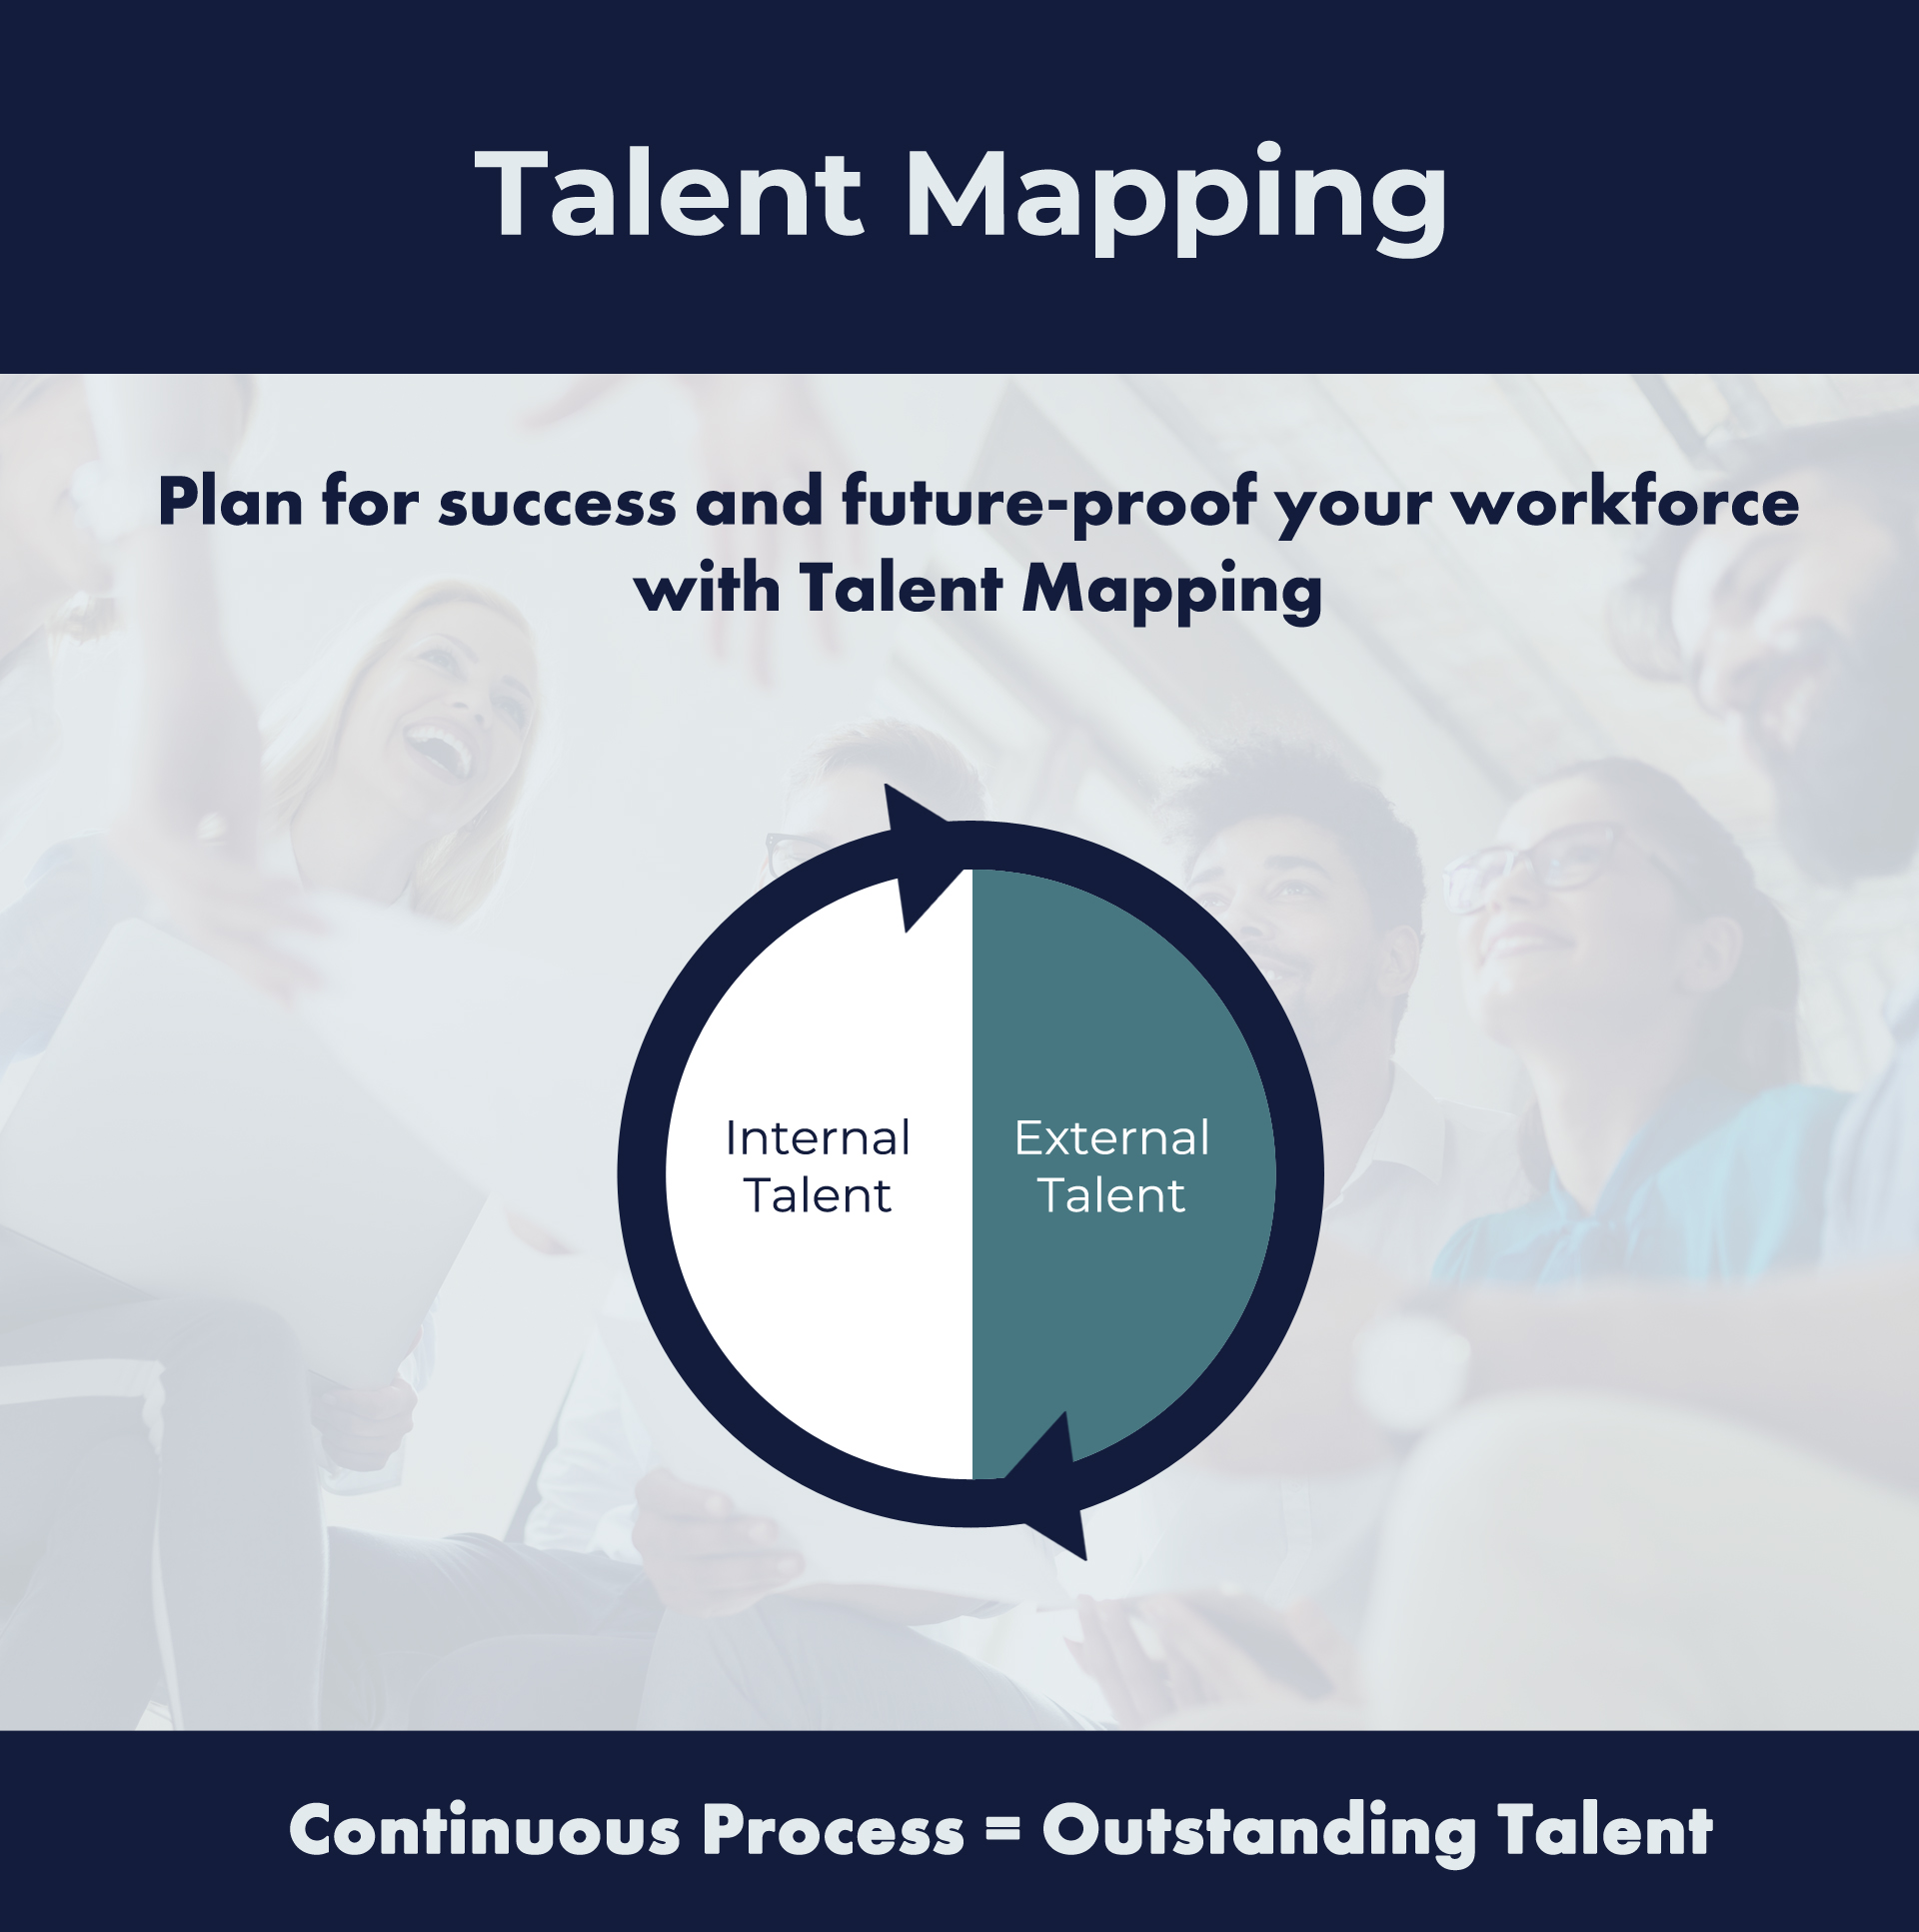 Talent Mapping infographic